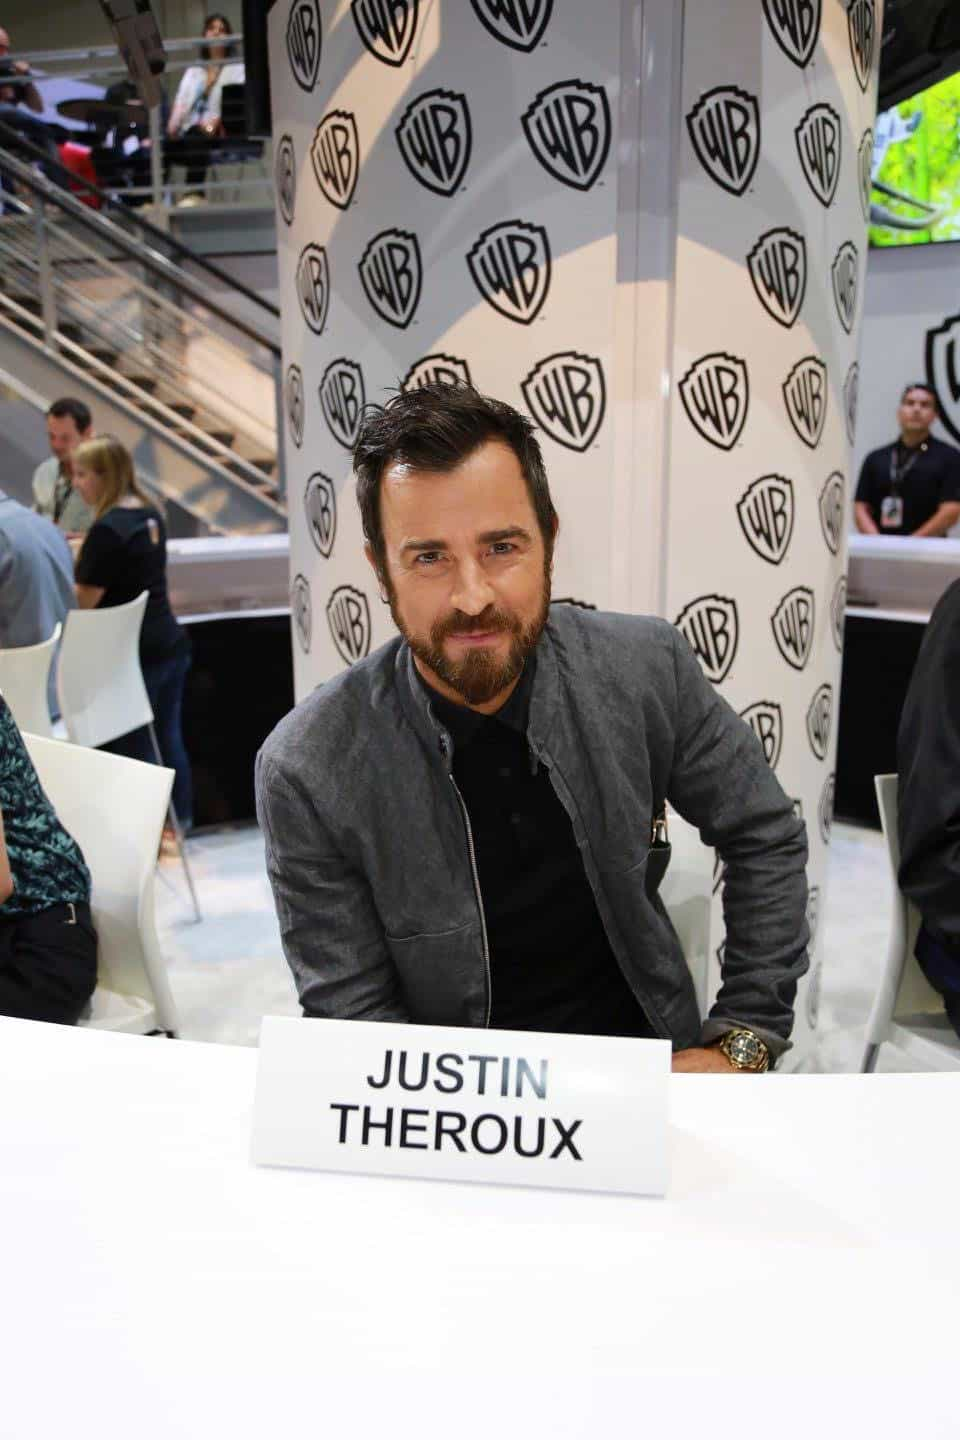 Justin Theroux stops by the Warner Bros. booth at Comic-Con 2017 on Thursday, July 20 to greet fans of THE LEGO NINJAGO MOVIE. #WBSDCC (© 2017 WBEI. All Rights Reserved)